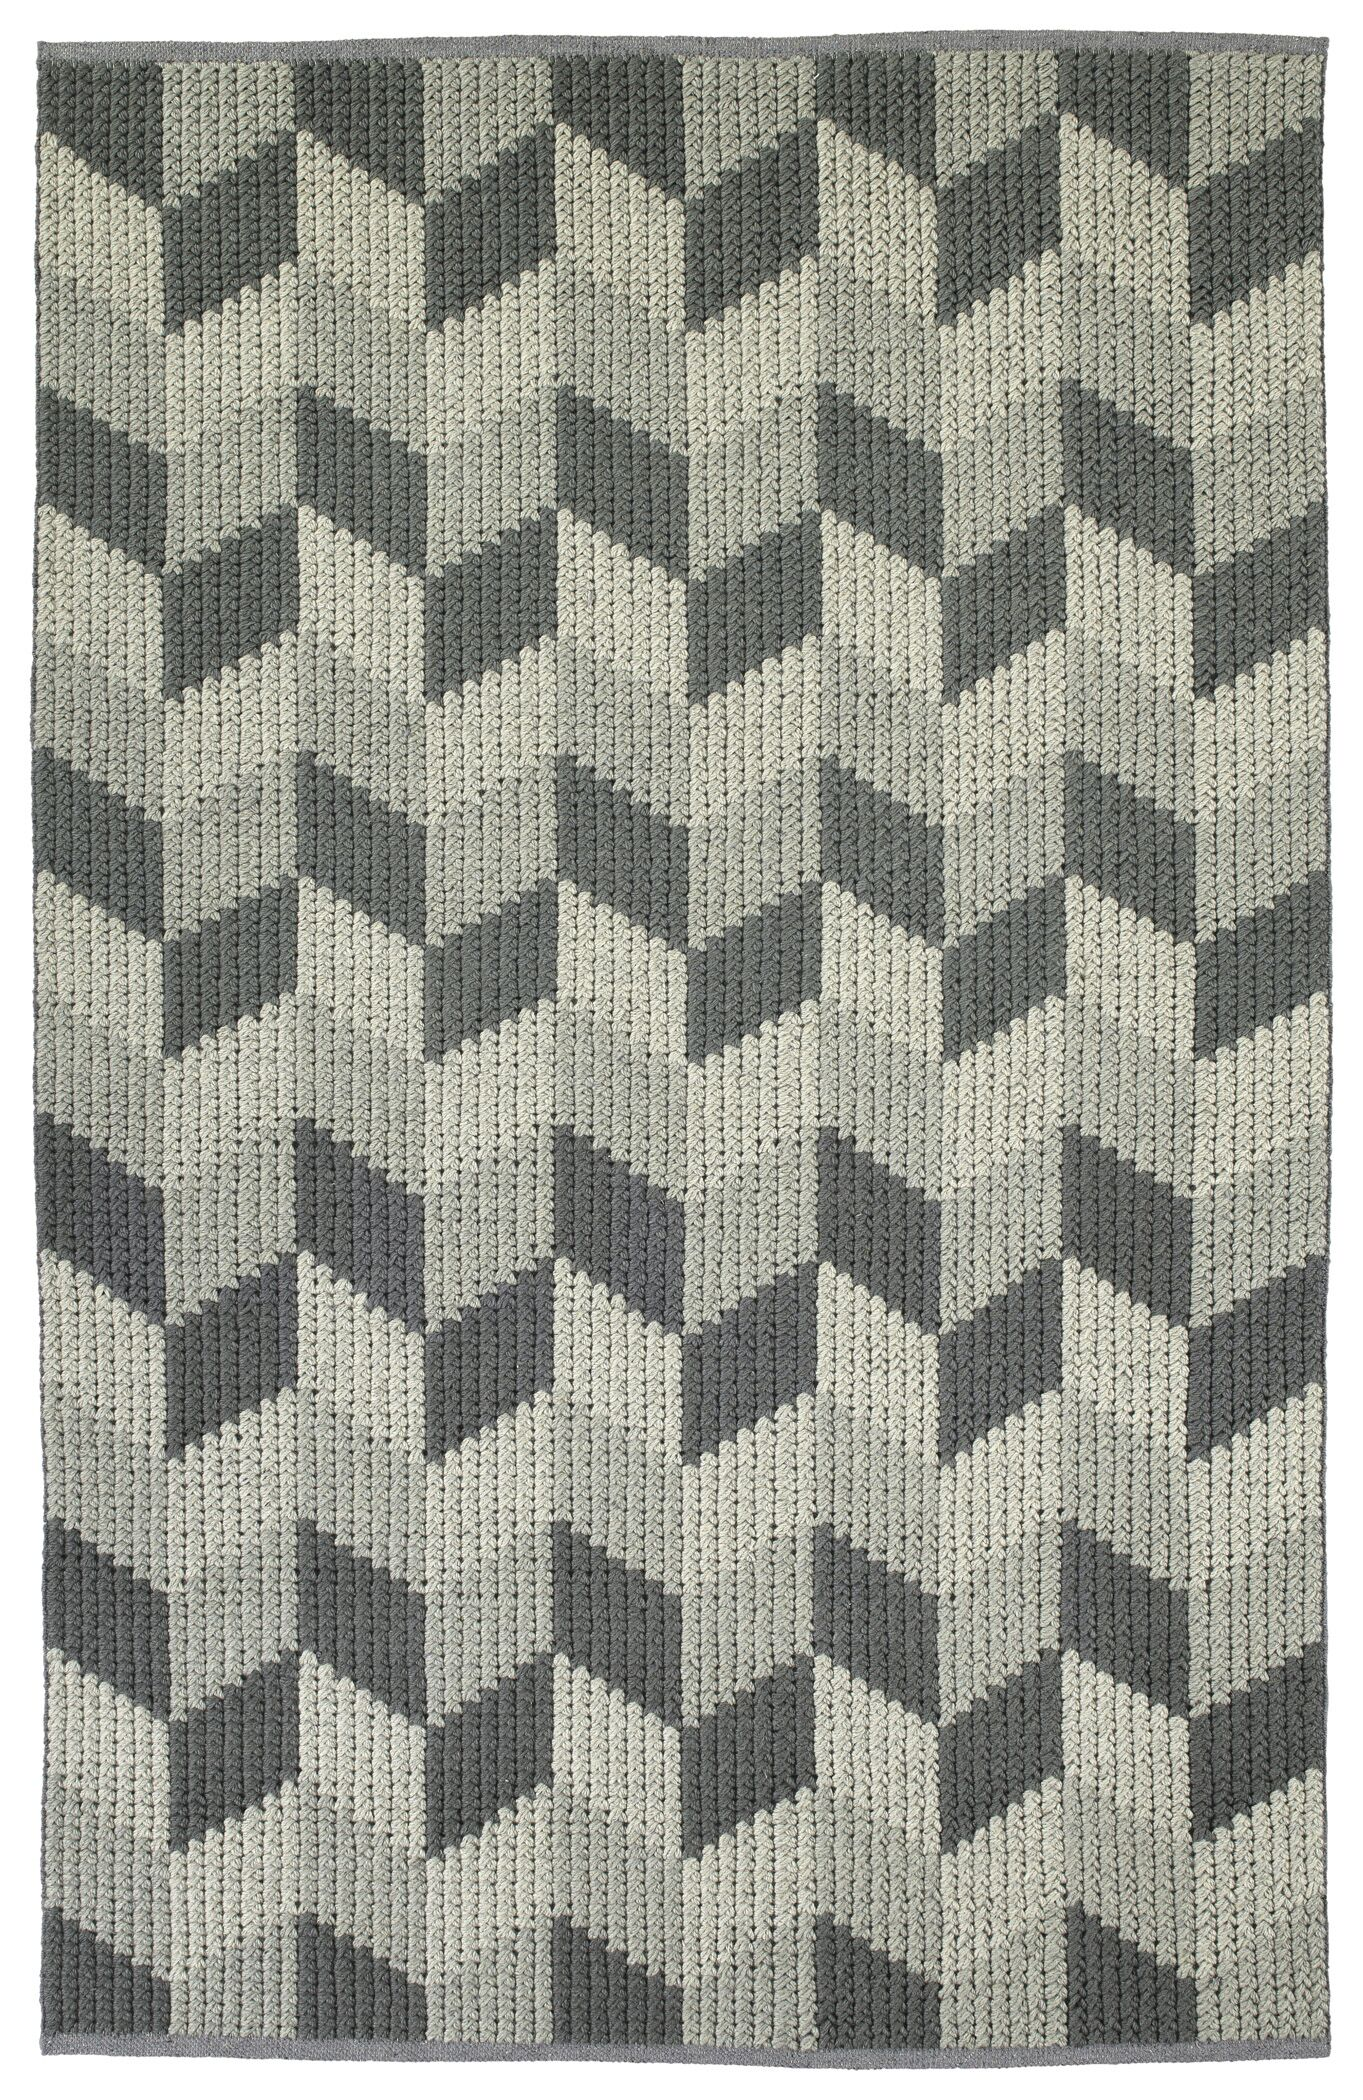 Stockstill Hand-Tufted Wool Gray/Graphite Area Rug Rug Size: Rectangle 8' x 10'